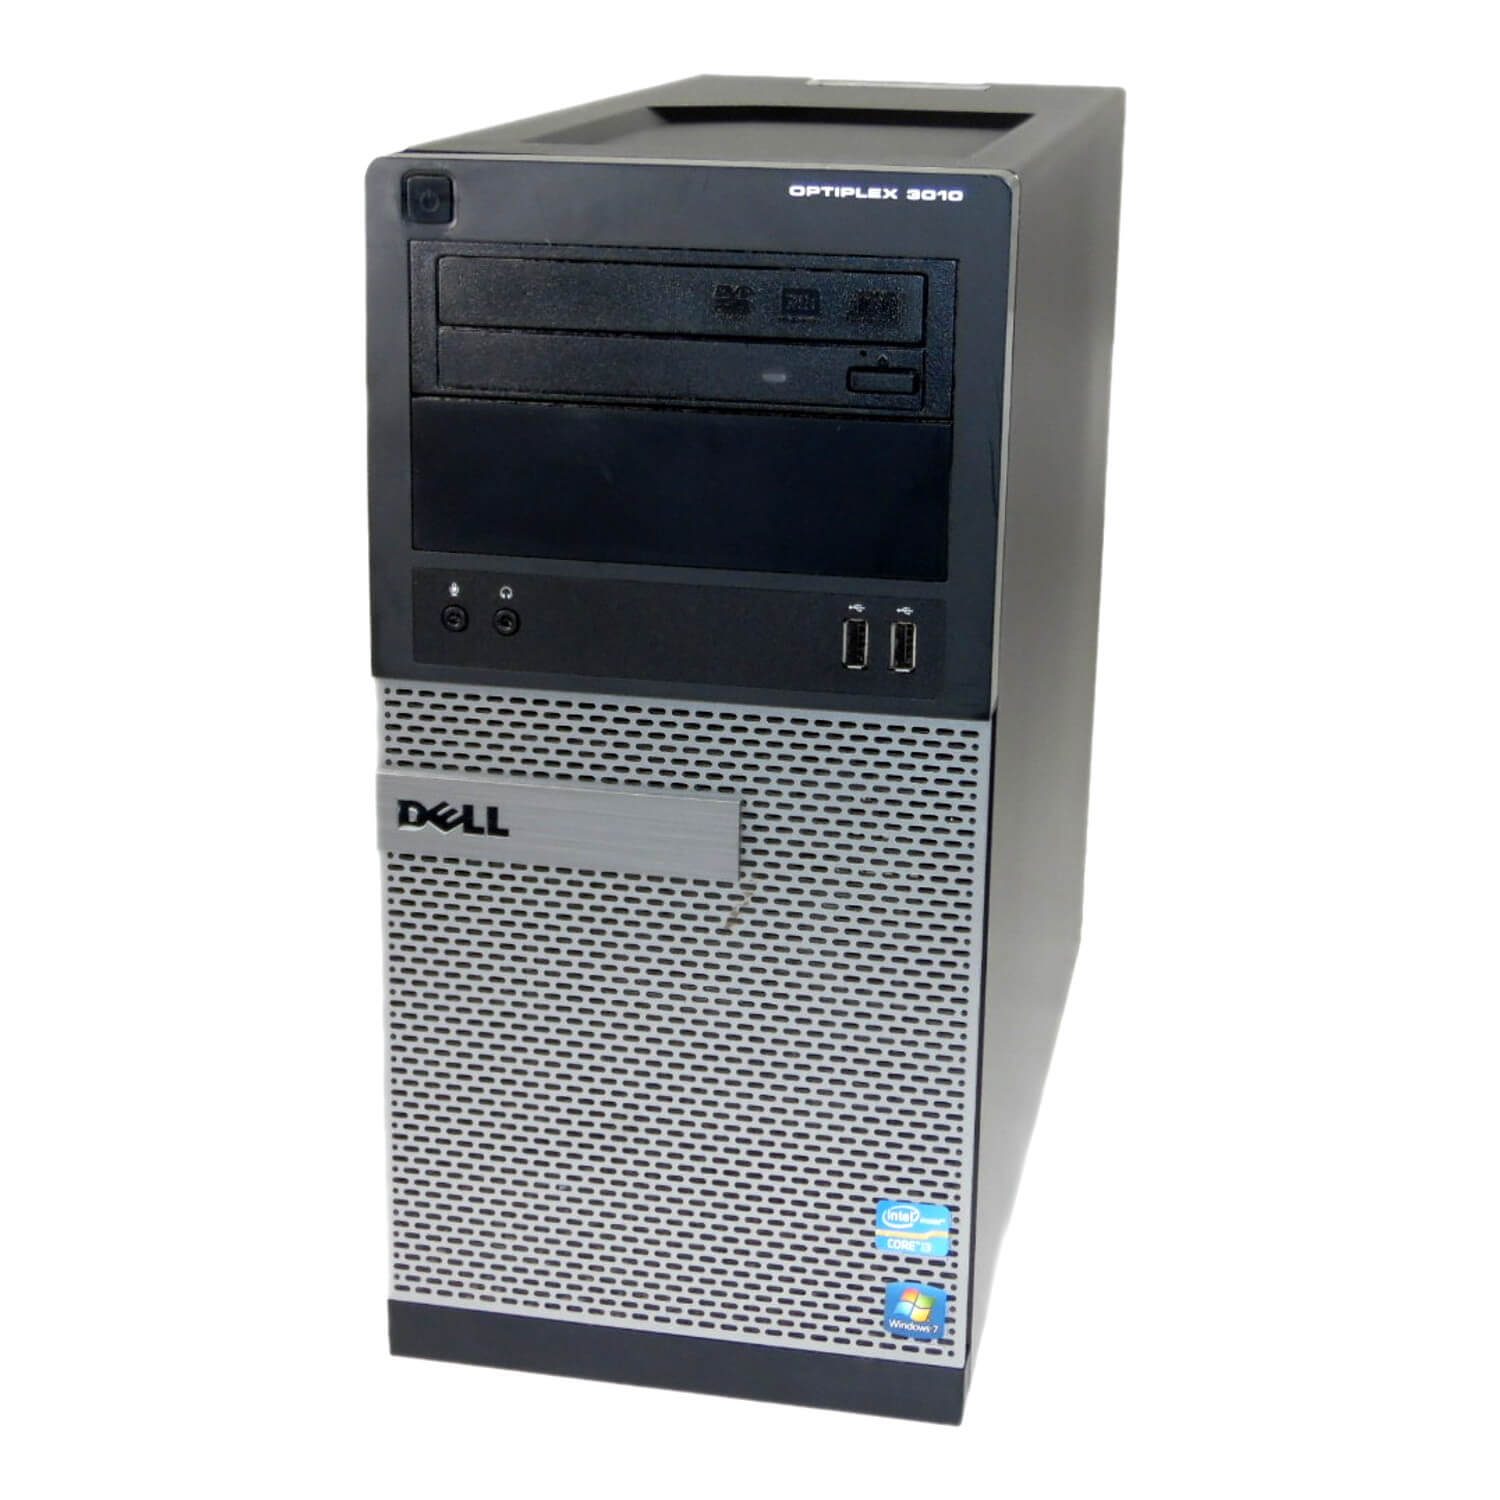 DELL 3010 TOWER I5-3470 3.2 / 8192 MB DDR3 / 120 GB SSD NOWY + 500 GB / DVD-RW / WINDOWS 10 PRO